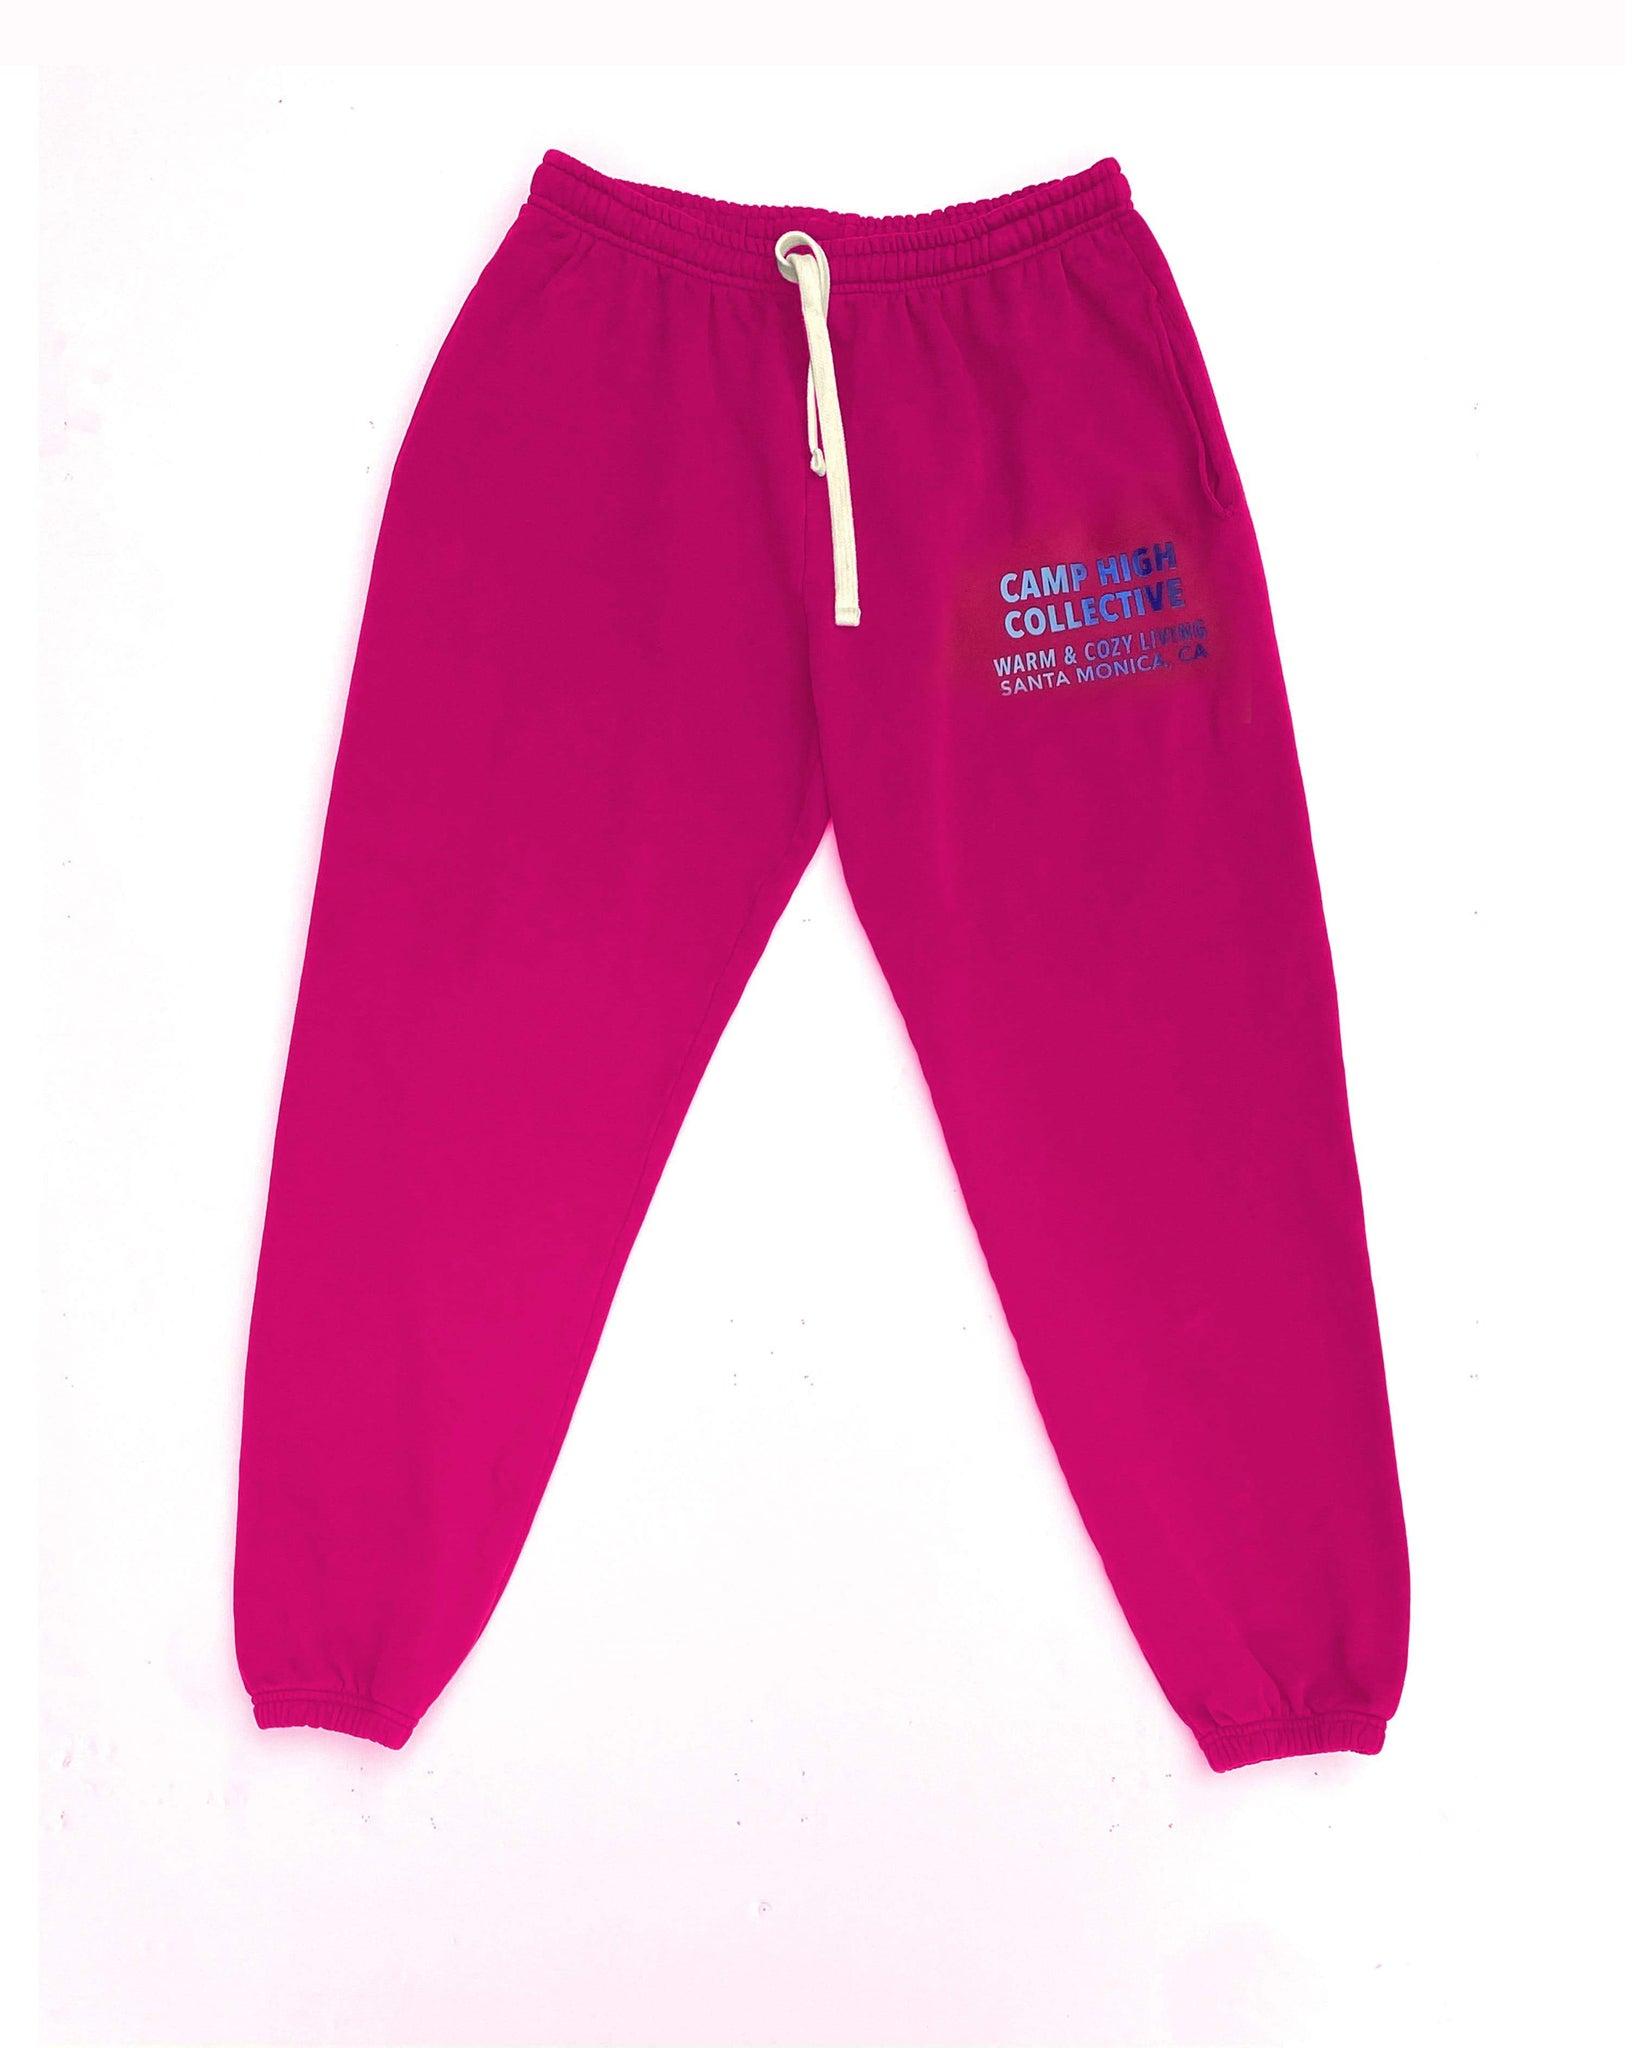 Camp High Fuchsia / Small Copy of Small Circle Pant Solid